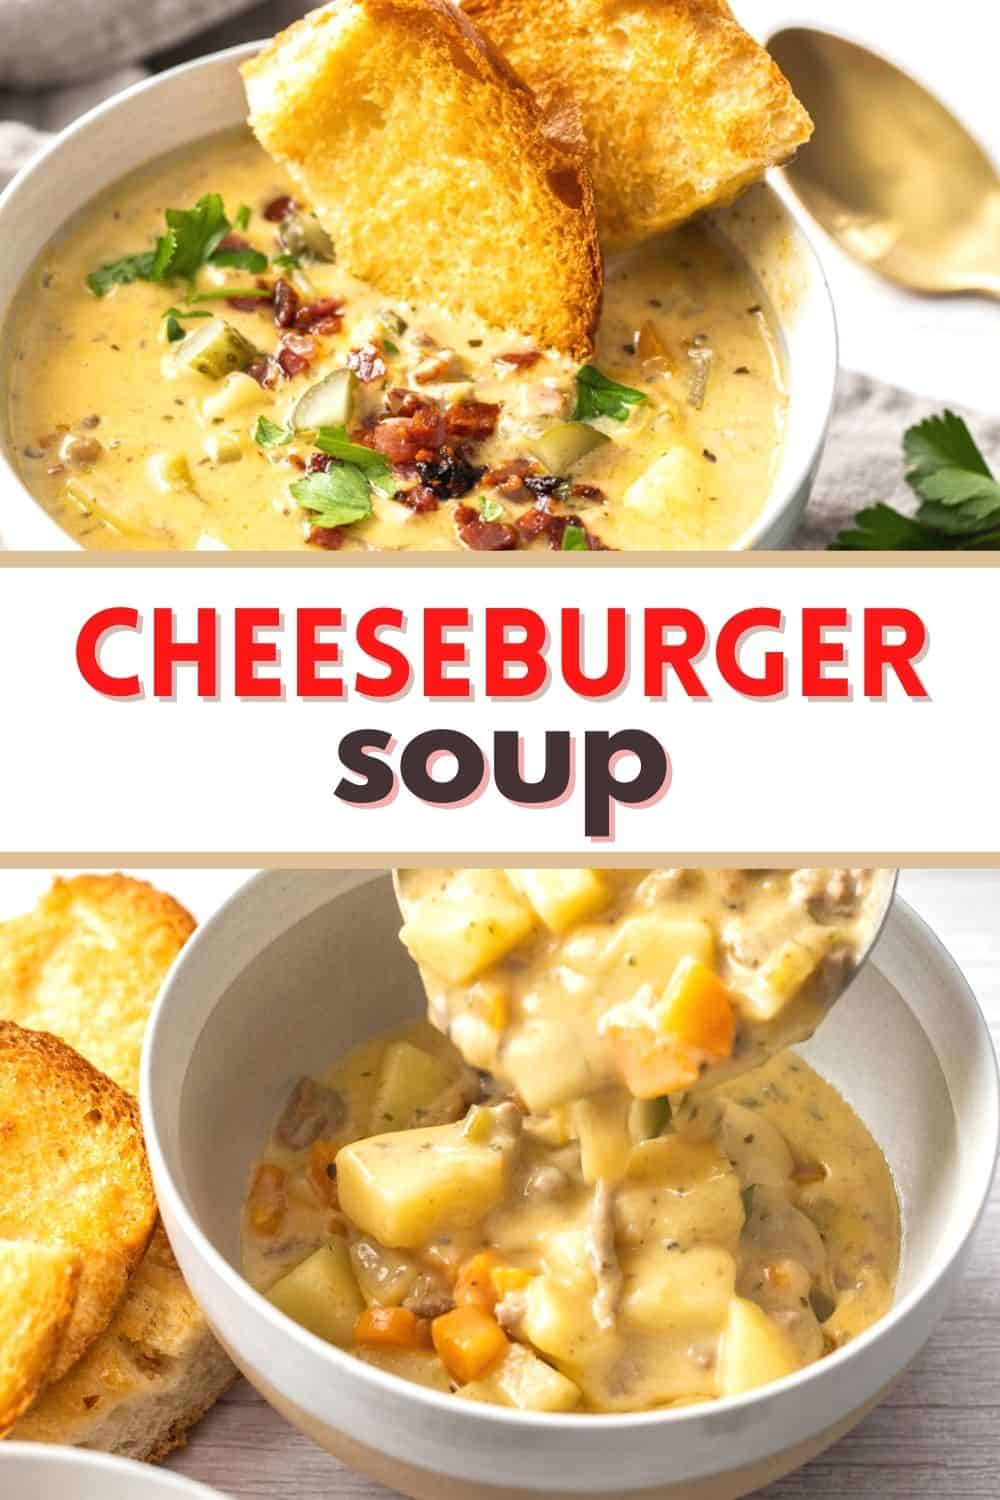 Cheeseburger soup is a creamy and cheesy bowl of comfort. Ground beef, cheese, potatoes and veggies make this hearty soup excellent!